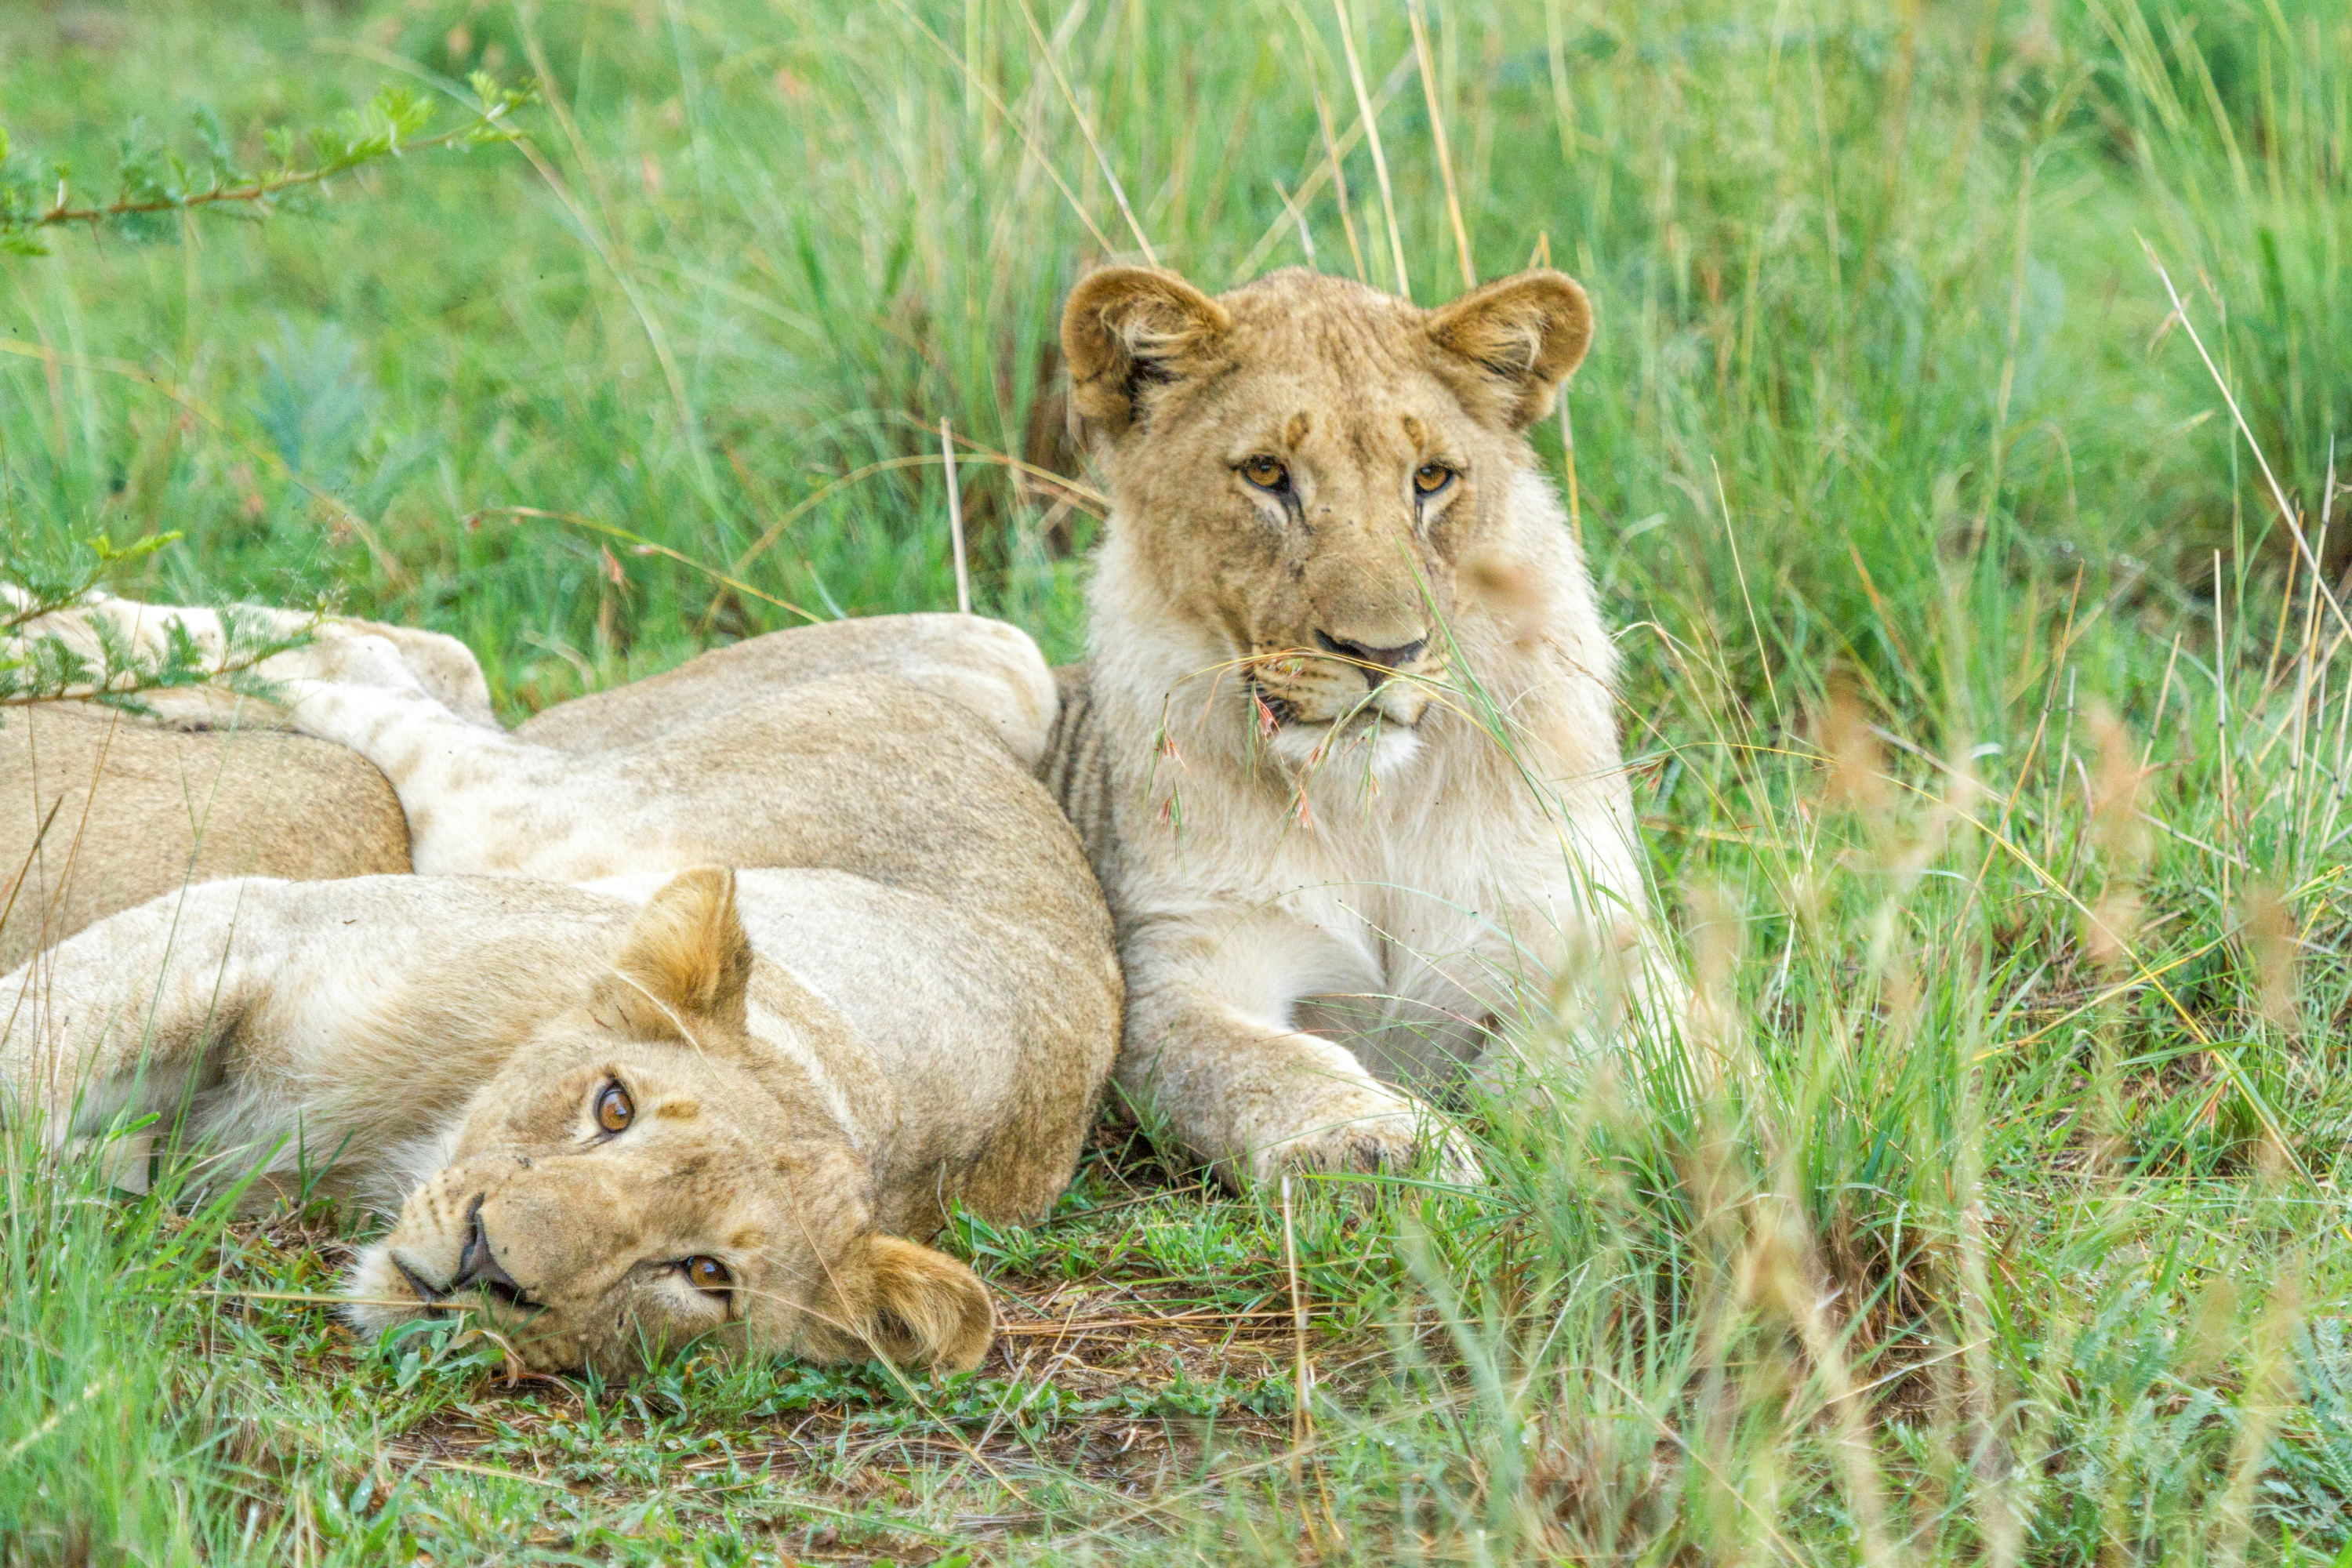 Lions at Pilanesberg National Park